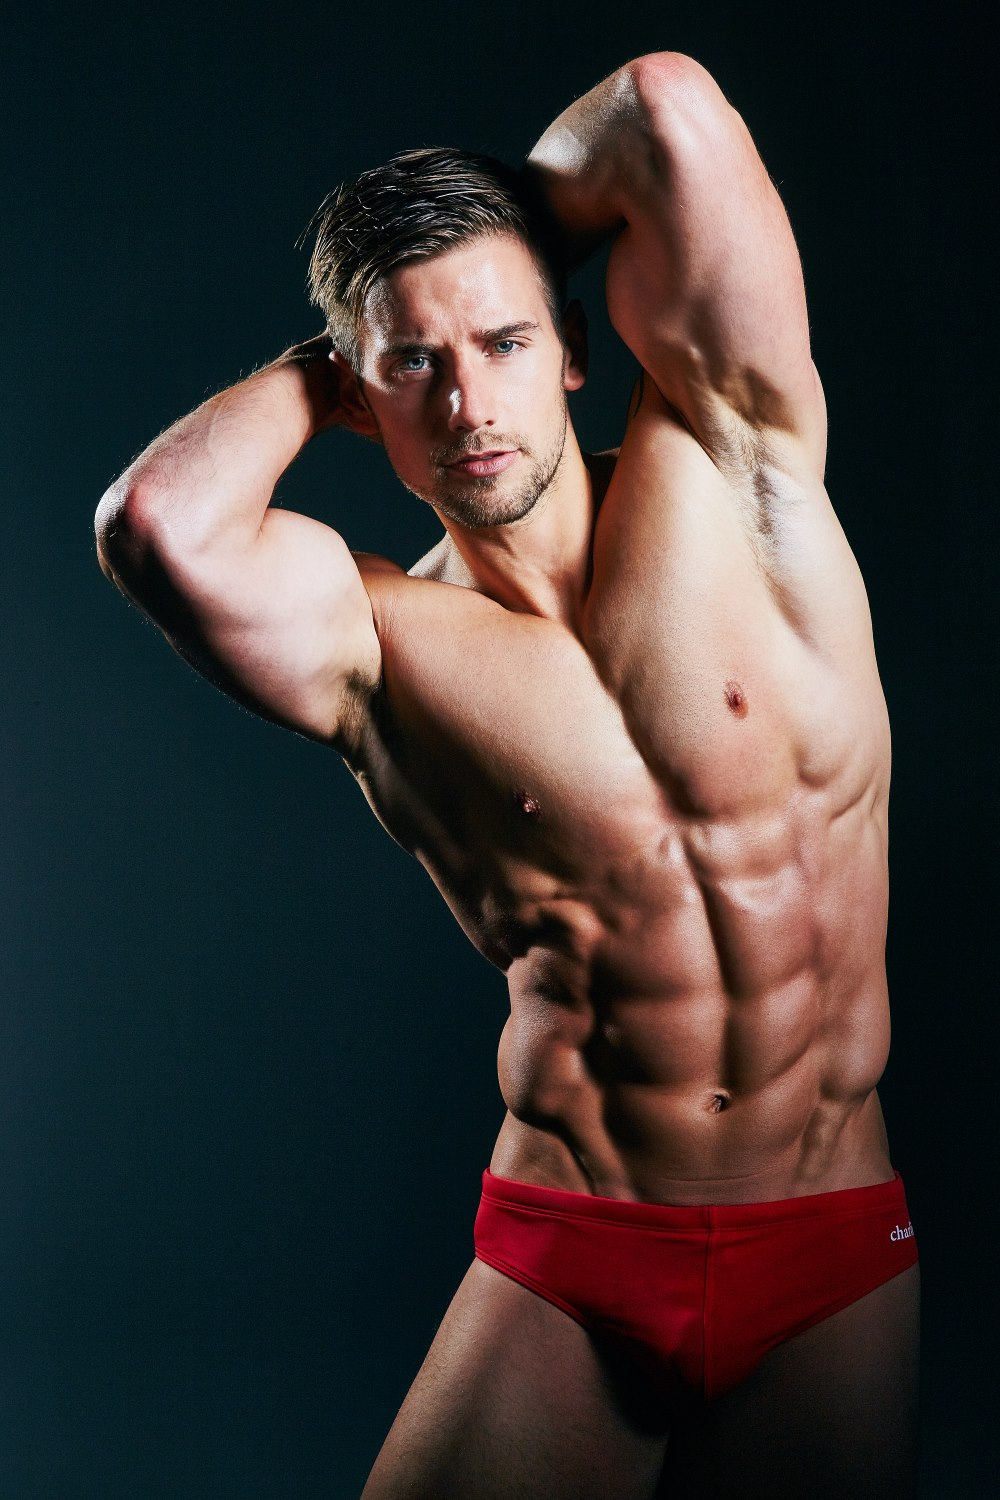 Blond model with athletic body 4